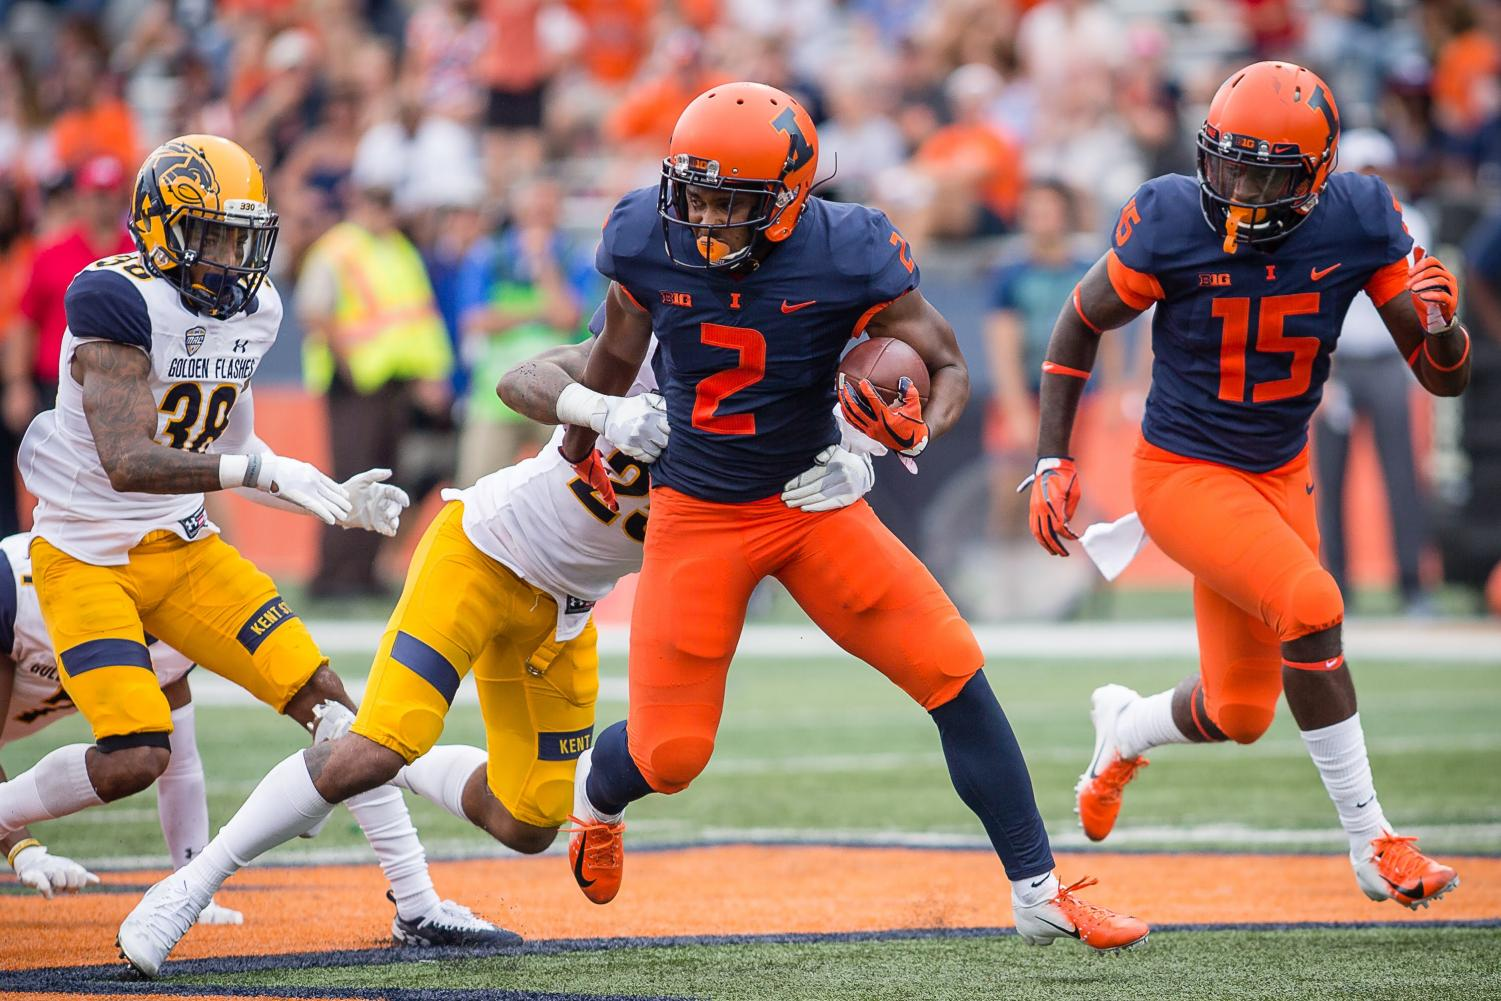 Illinois running back Reggie Corbin shakes off a defender during the game against Kent State at Memorial Stadium on Saturday. Corbin looks to be a big part of this year's offense.